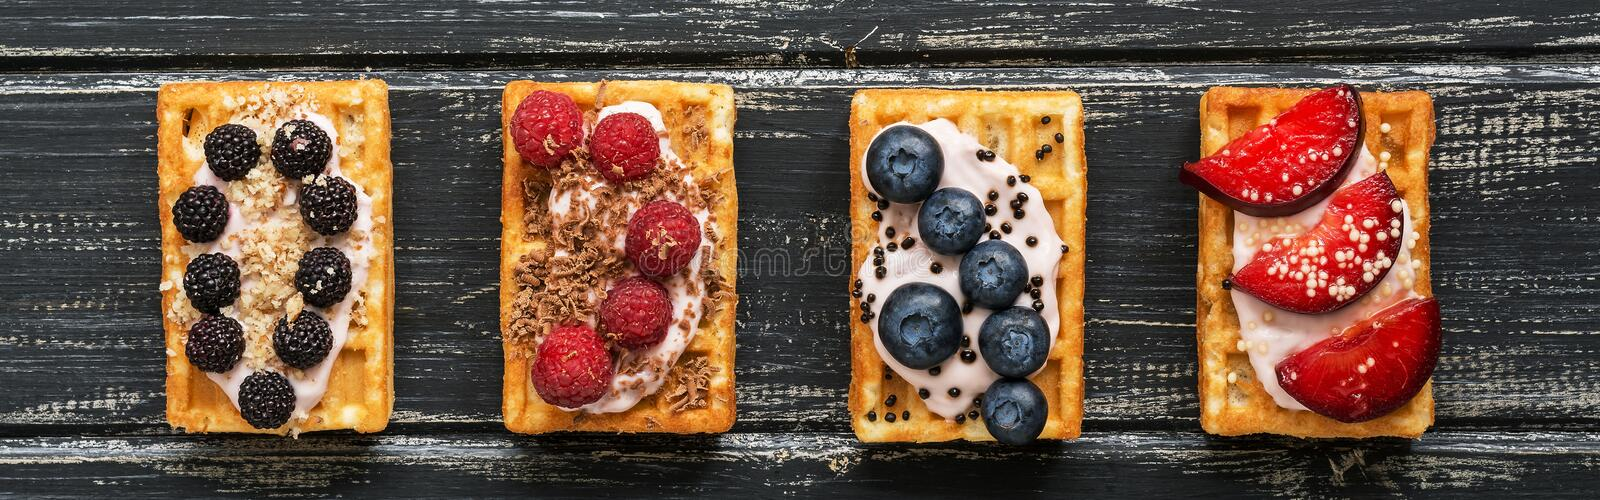 Homemade waffles with blueberries, raspberries and peaches on a black wooden rustic background,border. Belgian traditional waffle stock photos